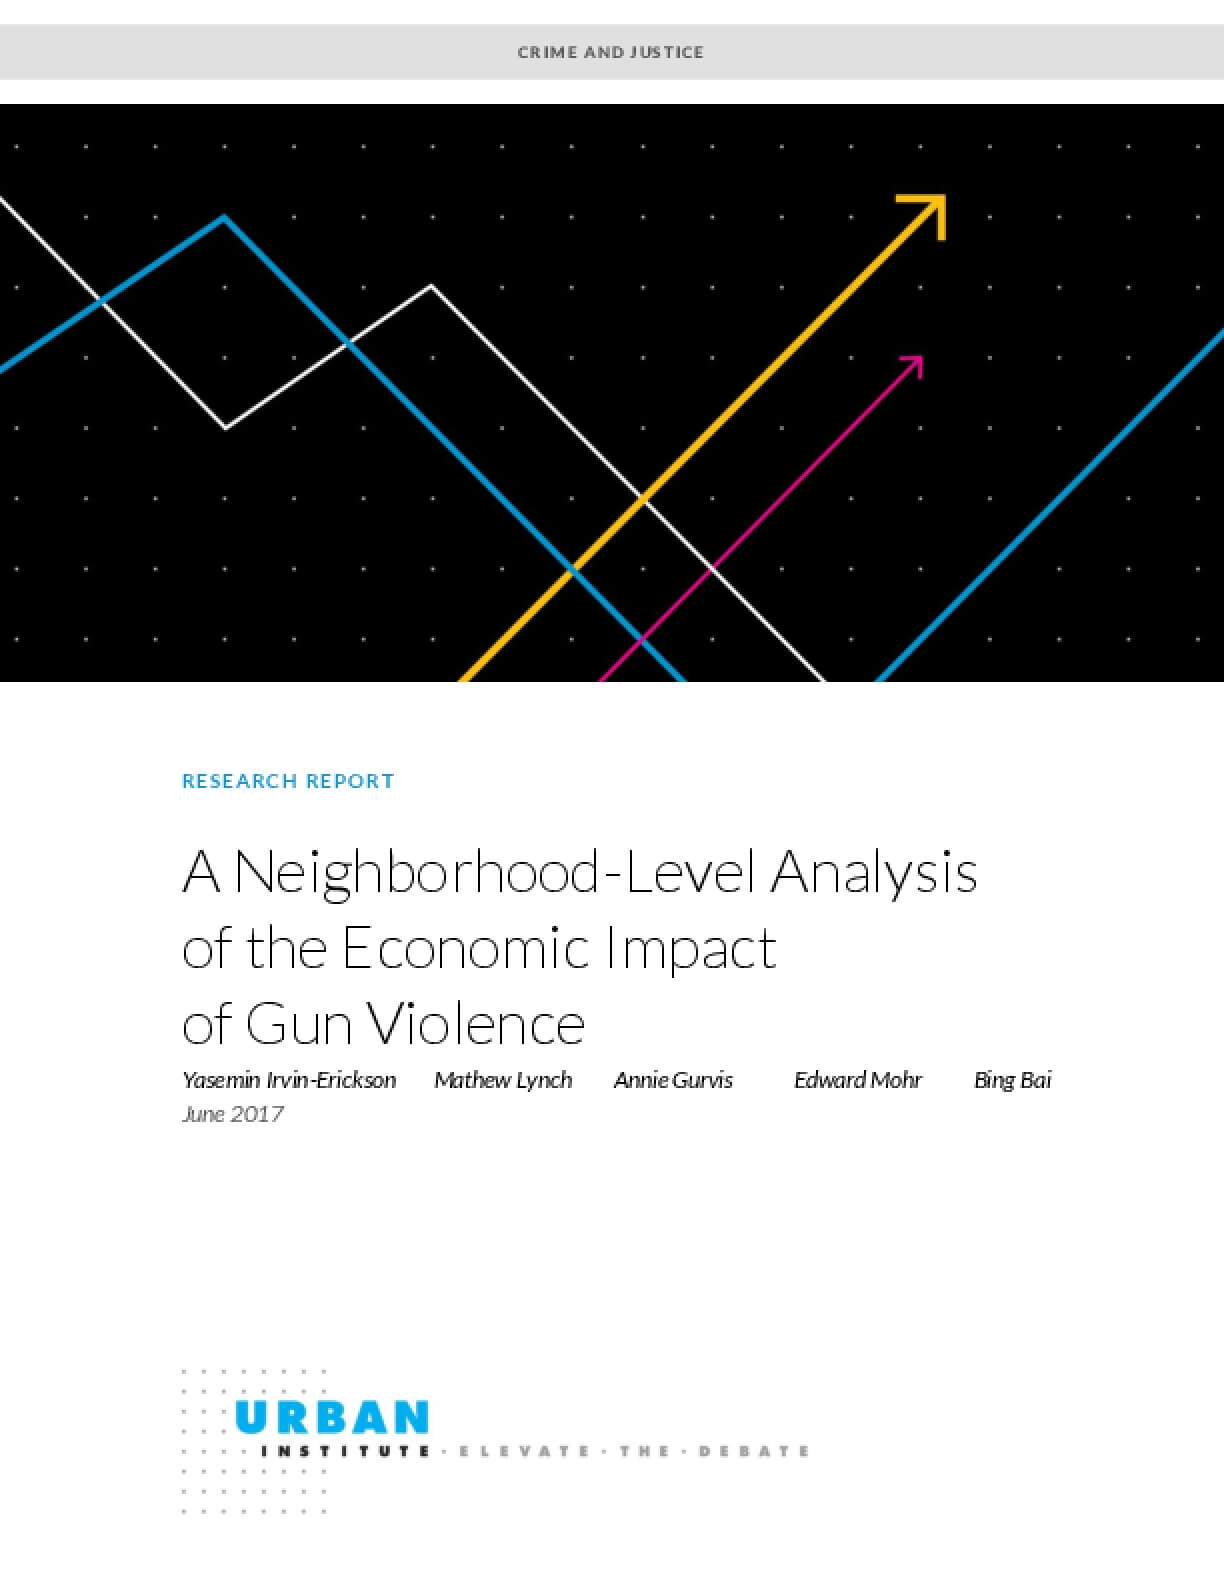 A Neighborhood-Level Analysis of the Economic Impact of Gun Violence